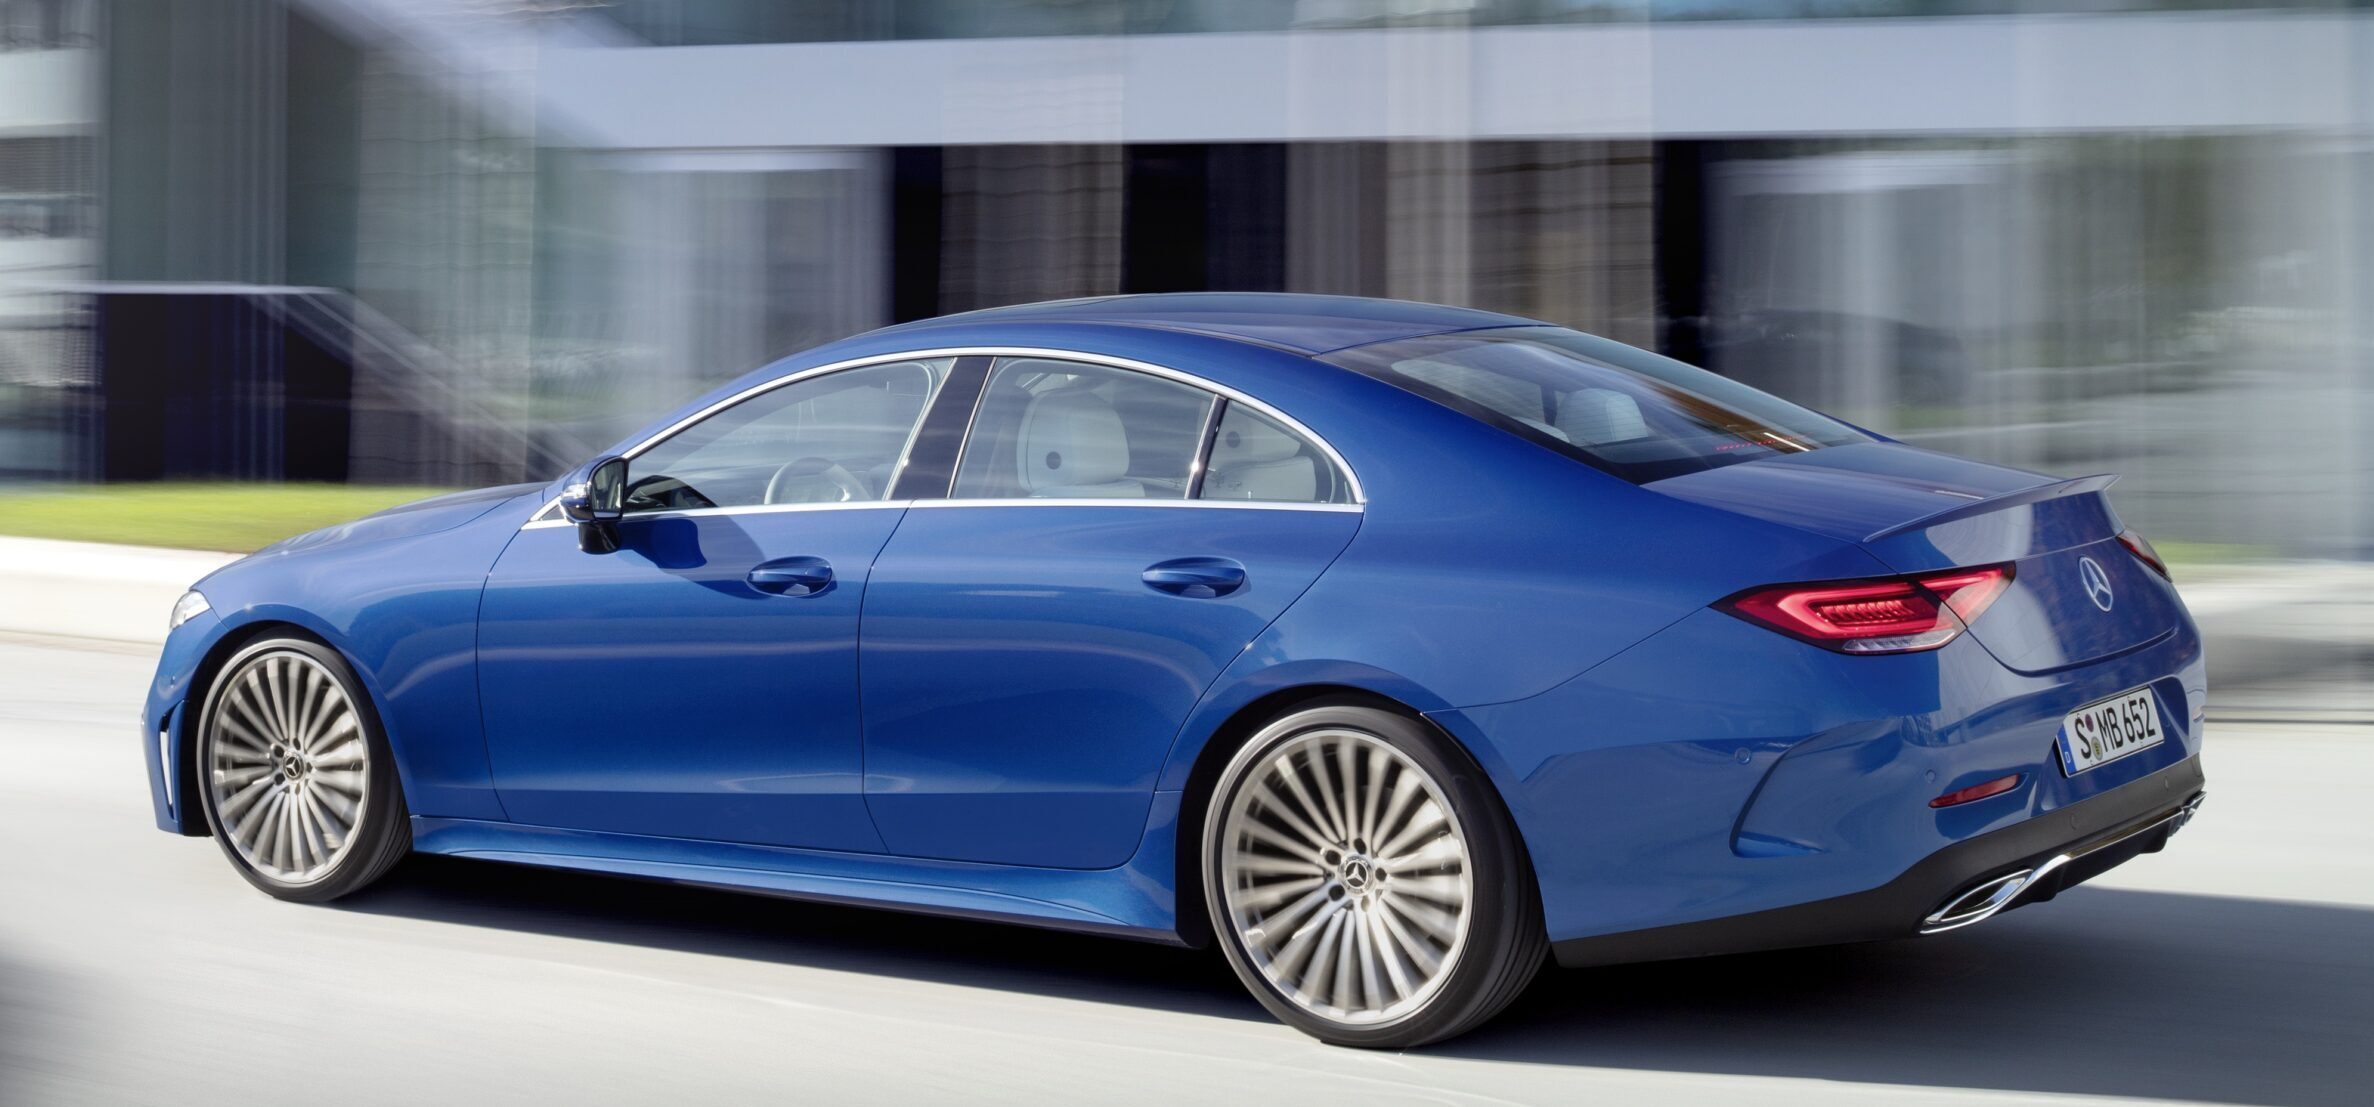 2022 Mercedes-Benz CLS coupe-sedan side view.